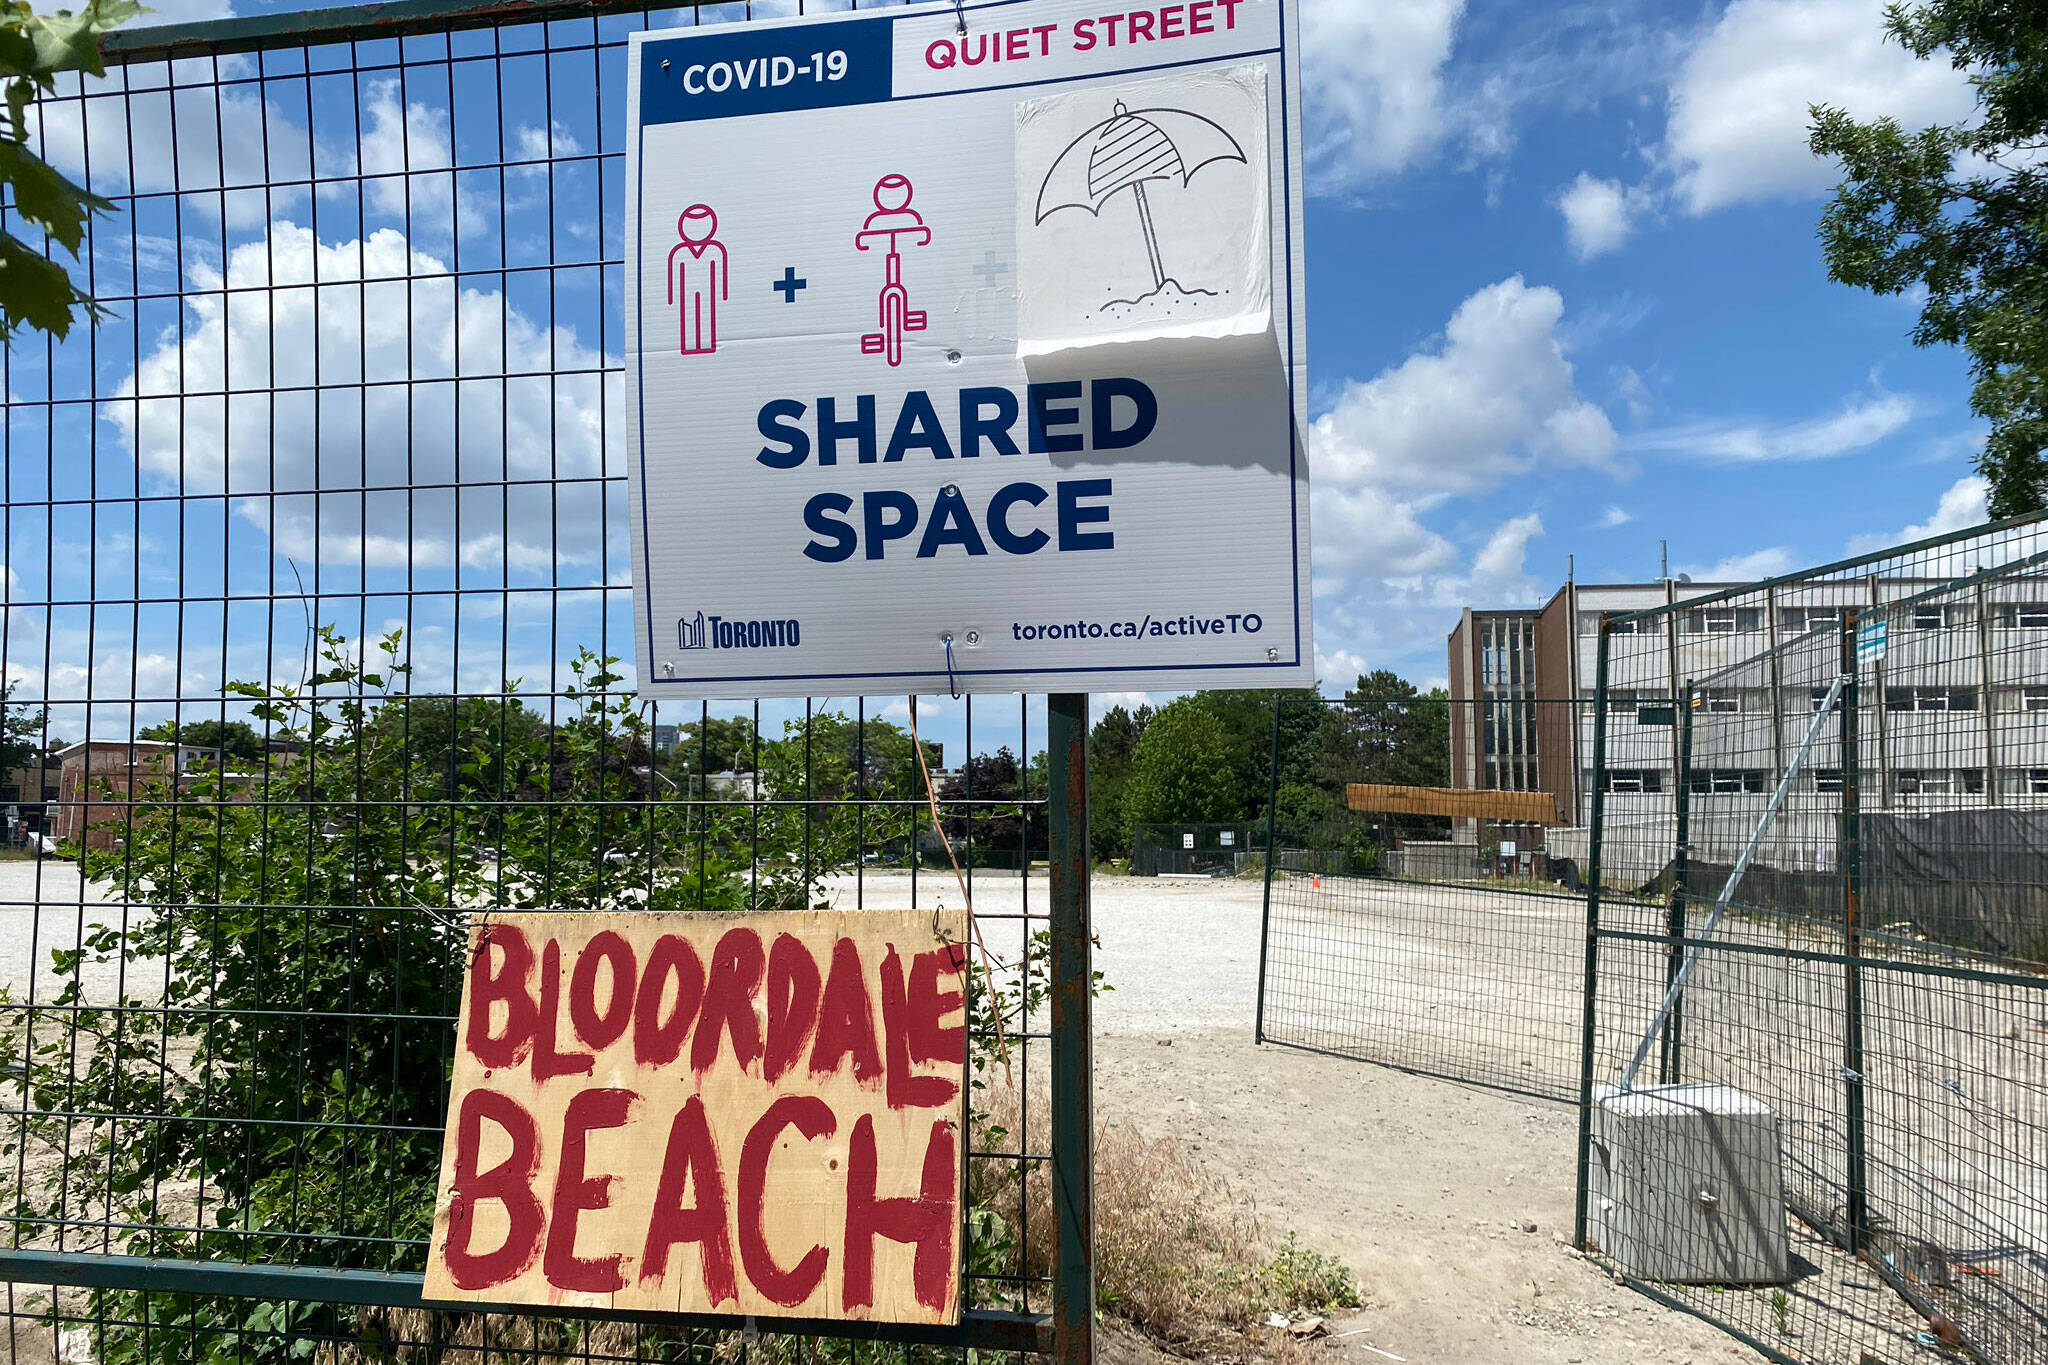 bloordale beach toronto